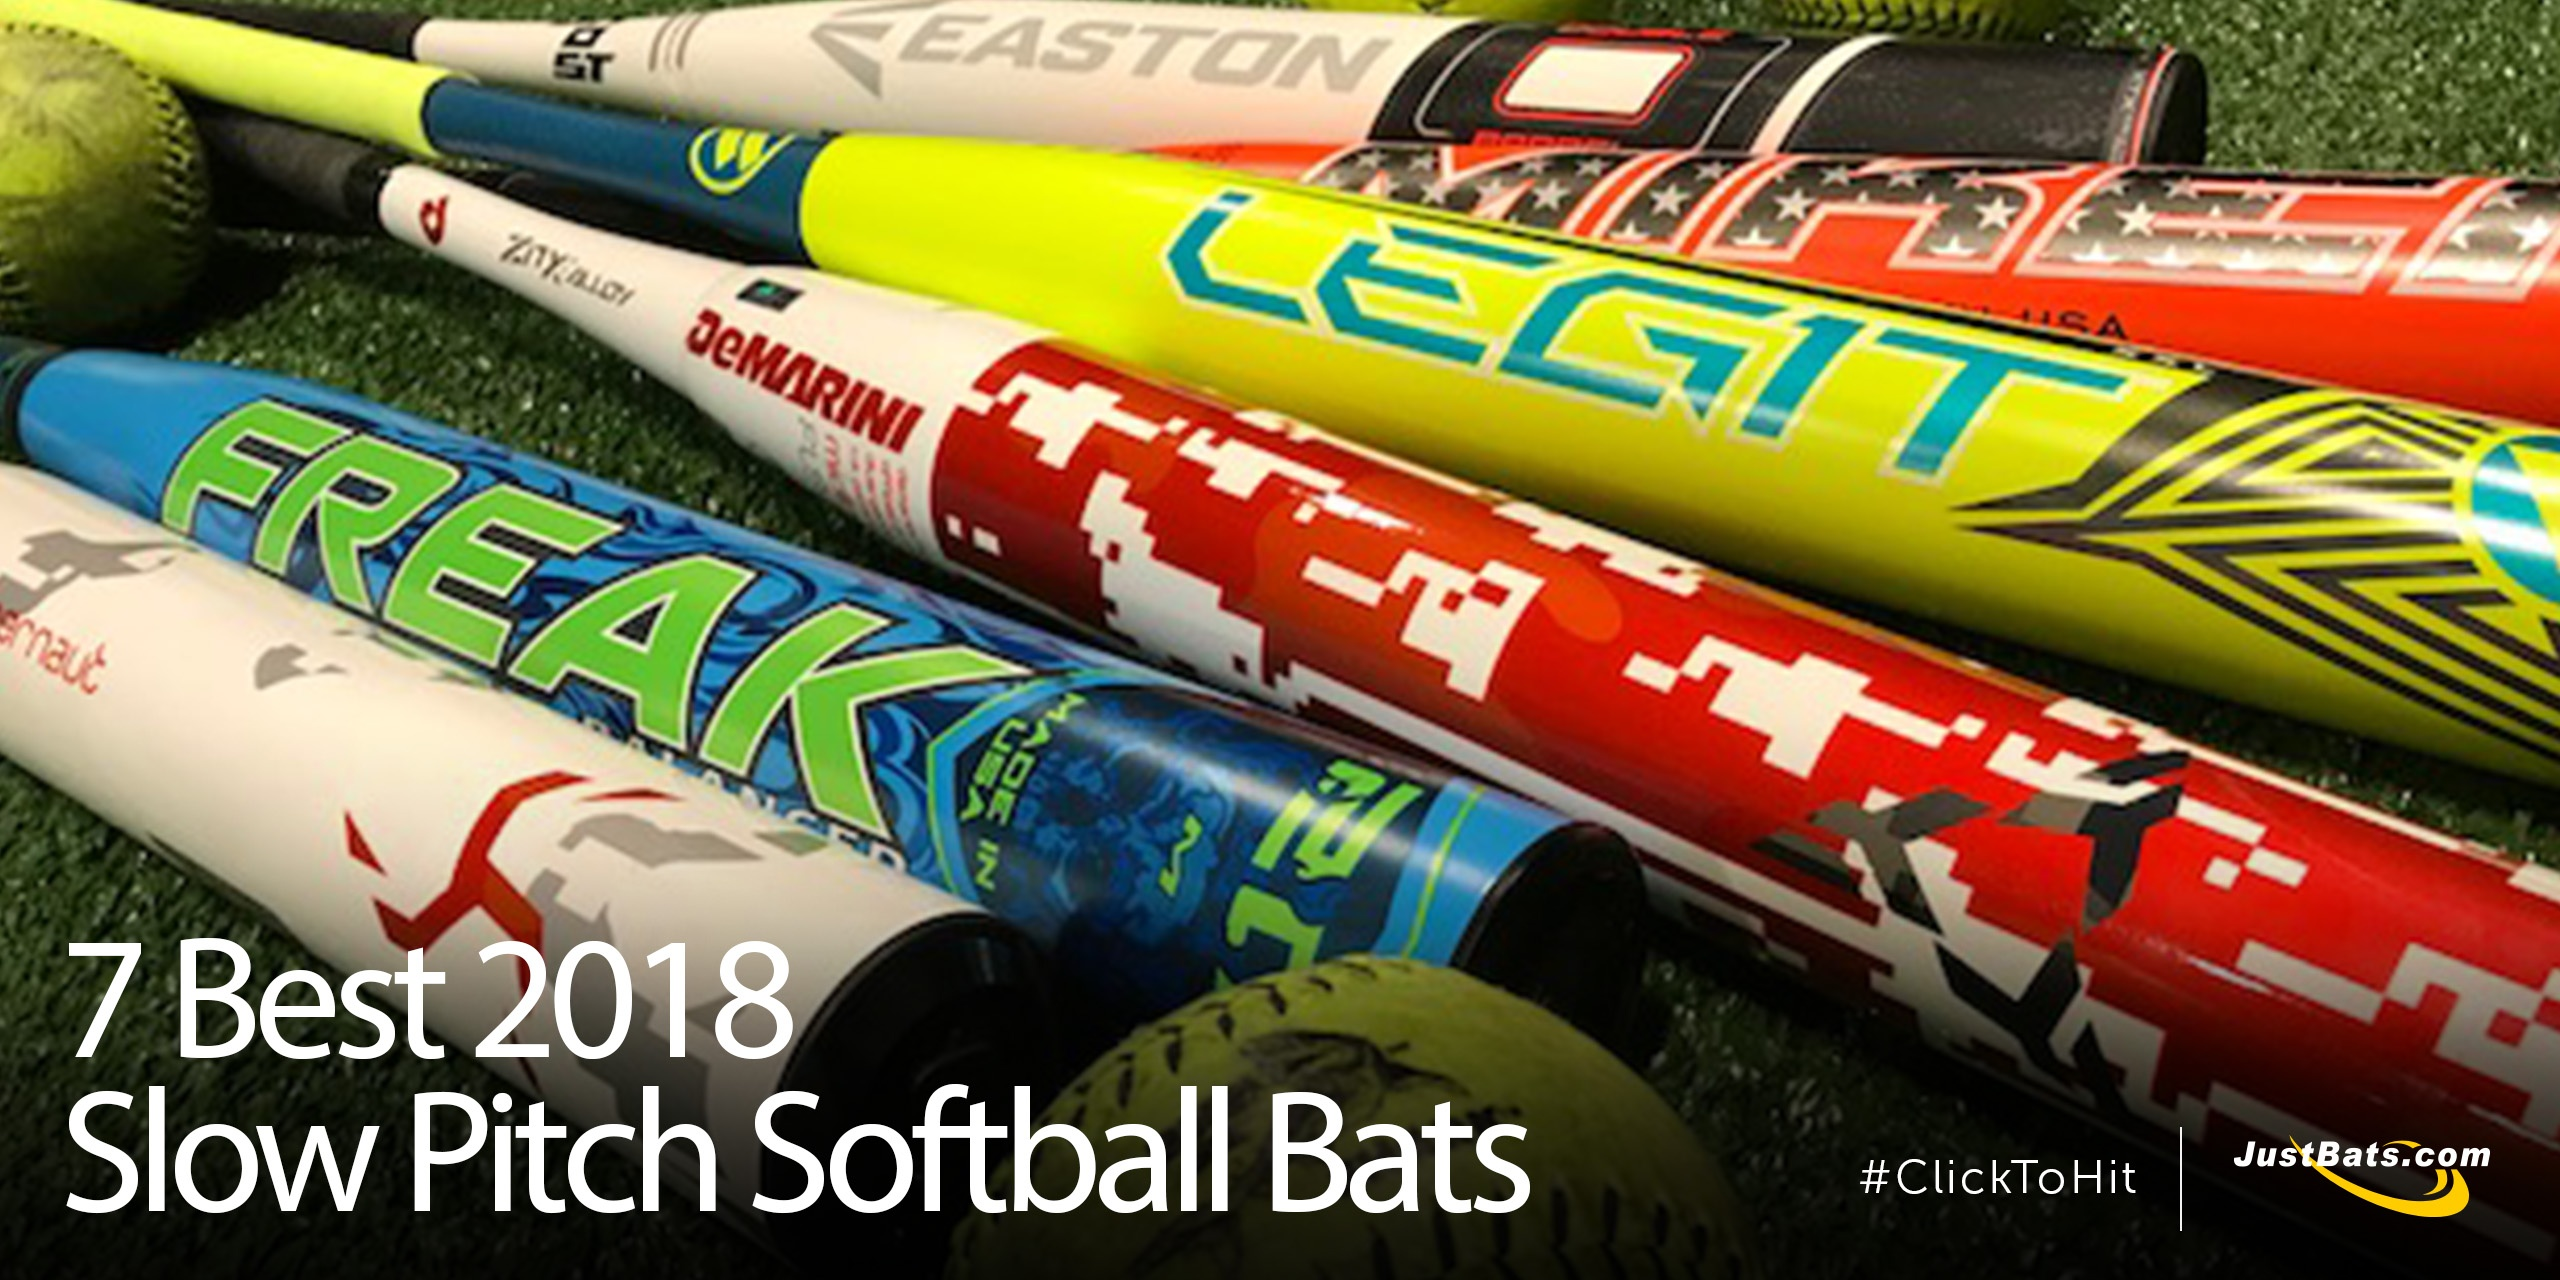 7 Best 2018 Slow Pitch Bats - Blog.jpg